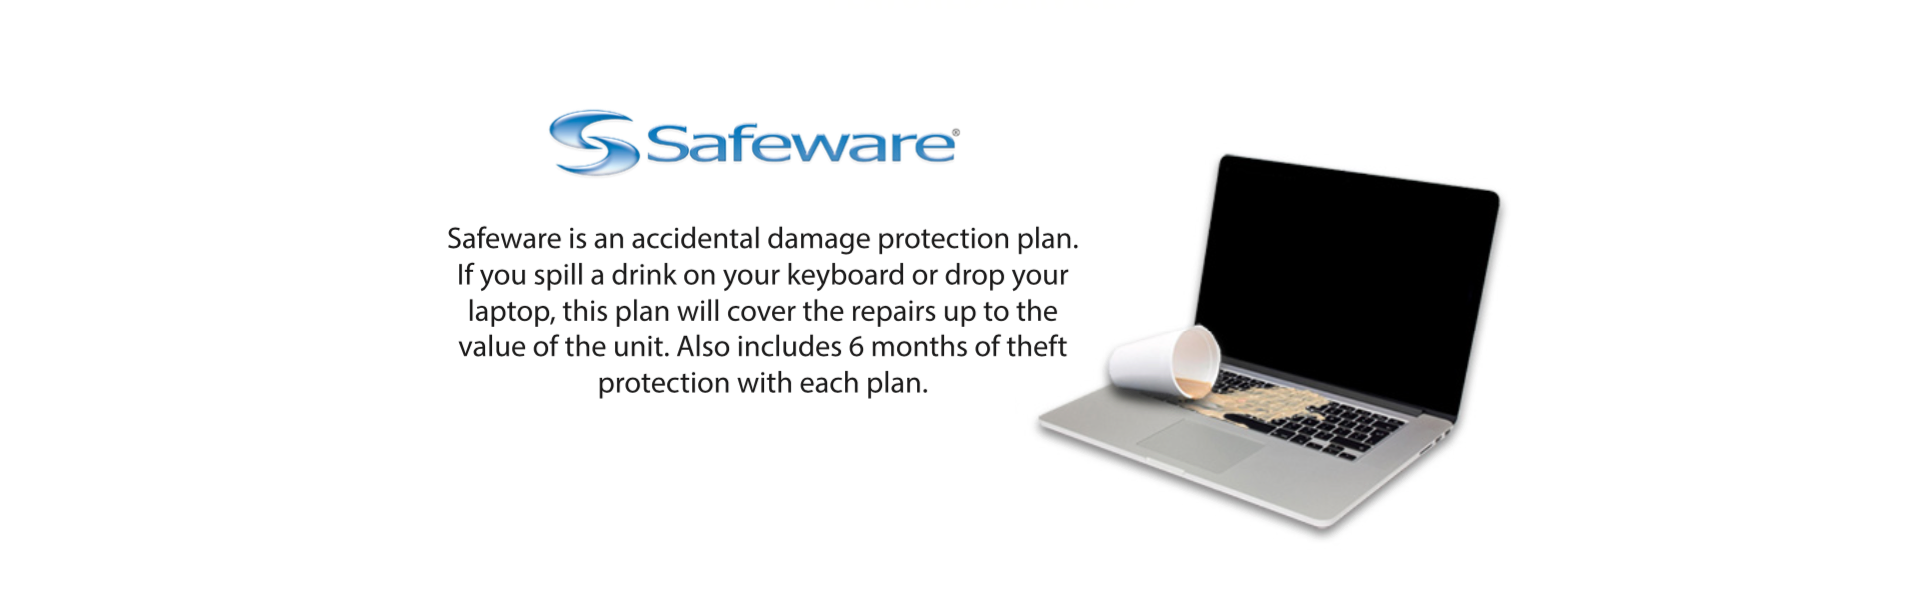 Safeware Accidental Protection promo